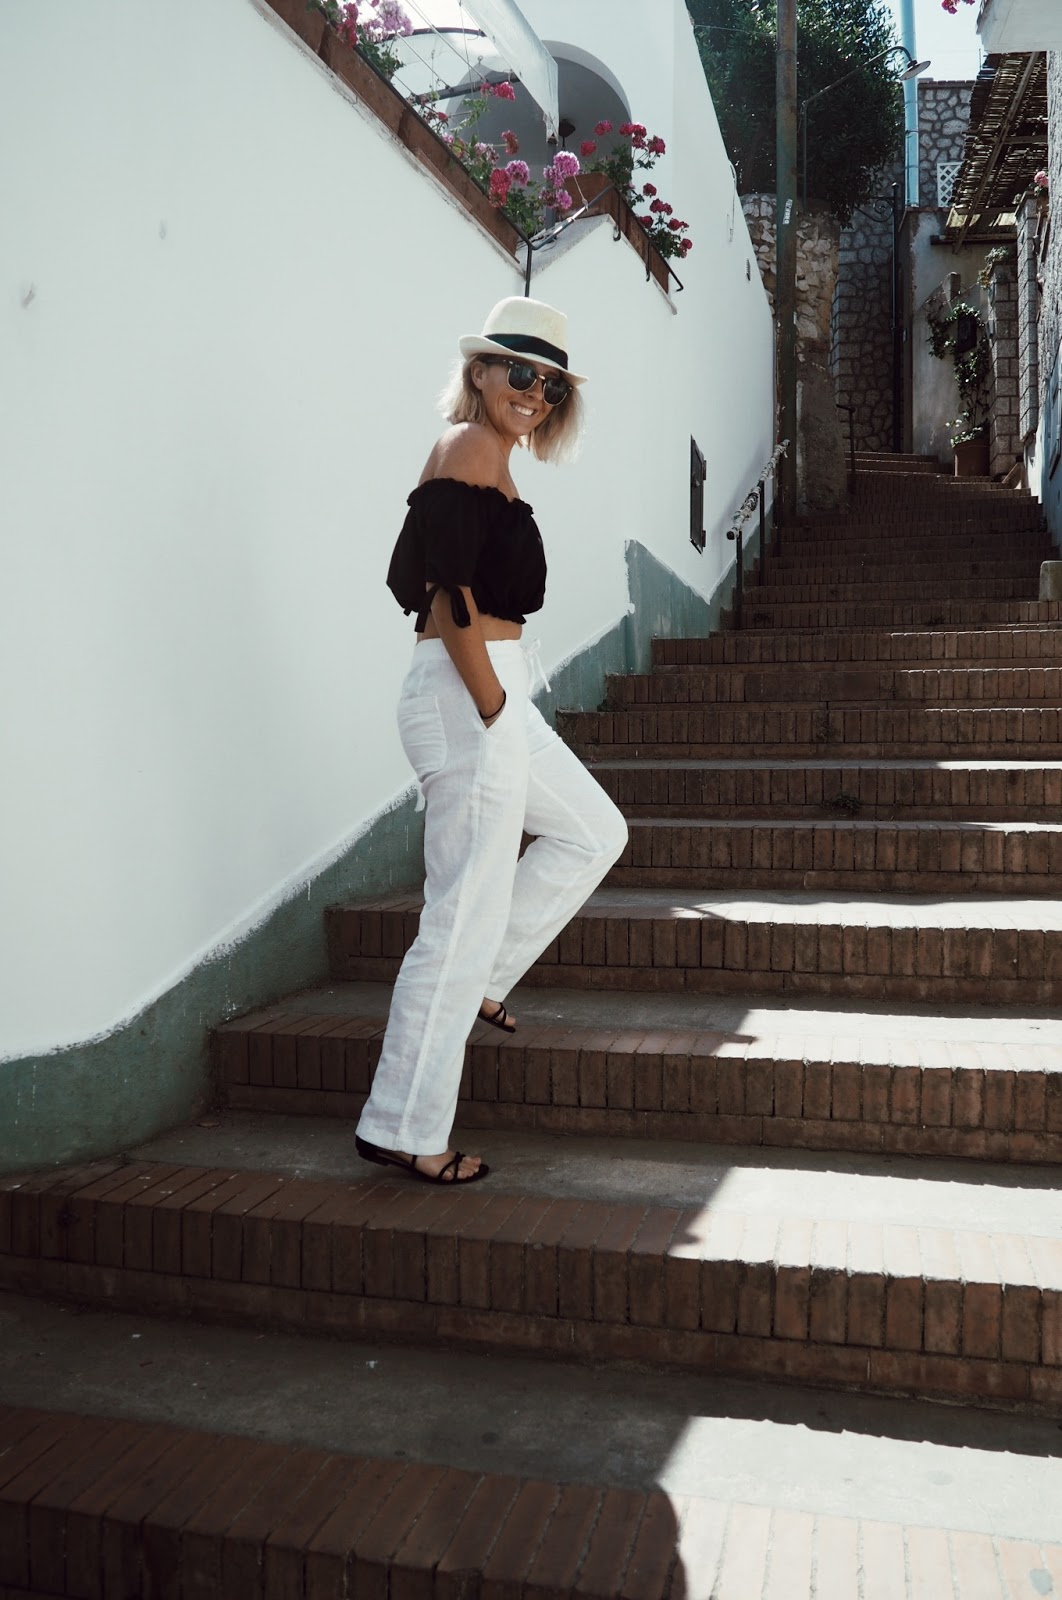 THE COME BACK OF LINEN TROUSERS